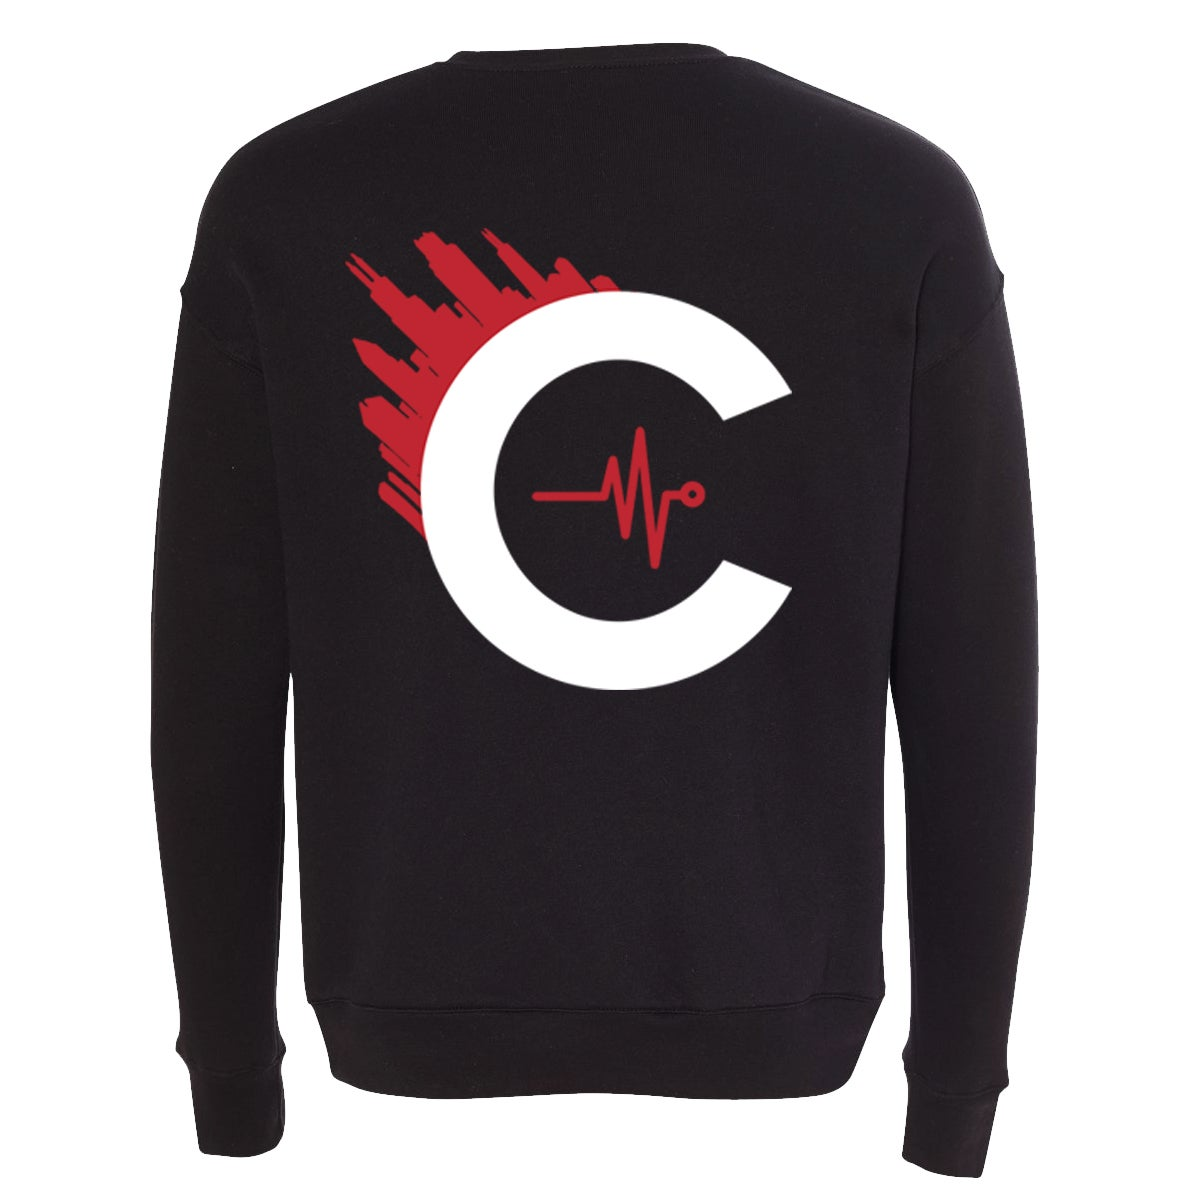 Image of CULTUREFLEE '19 Crewneck Sweater - BLACK